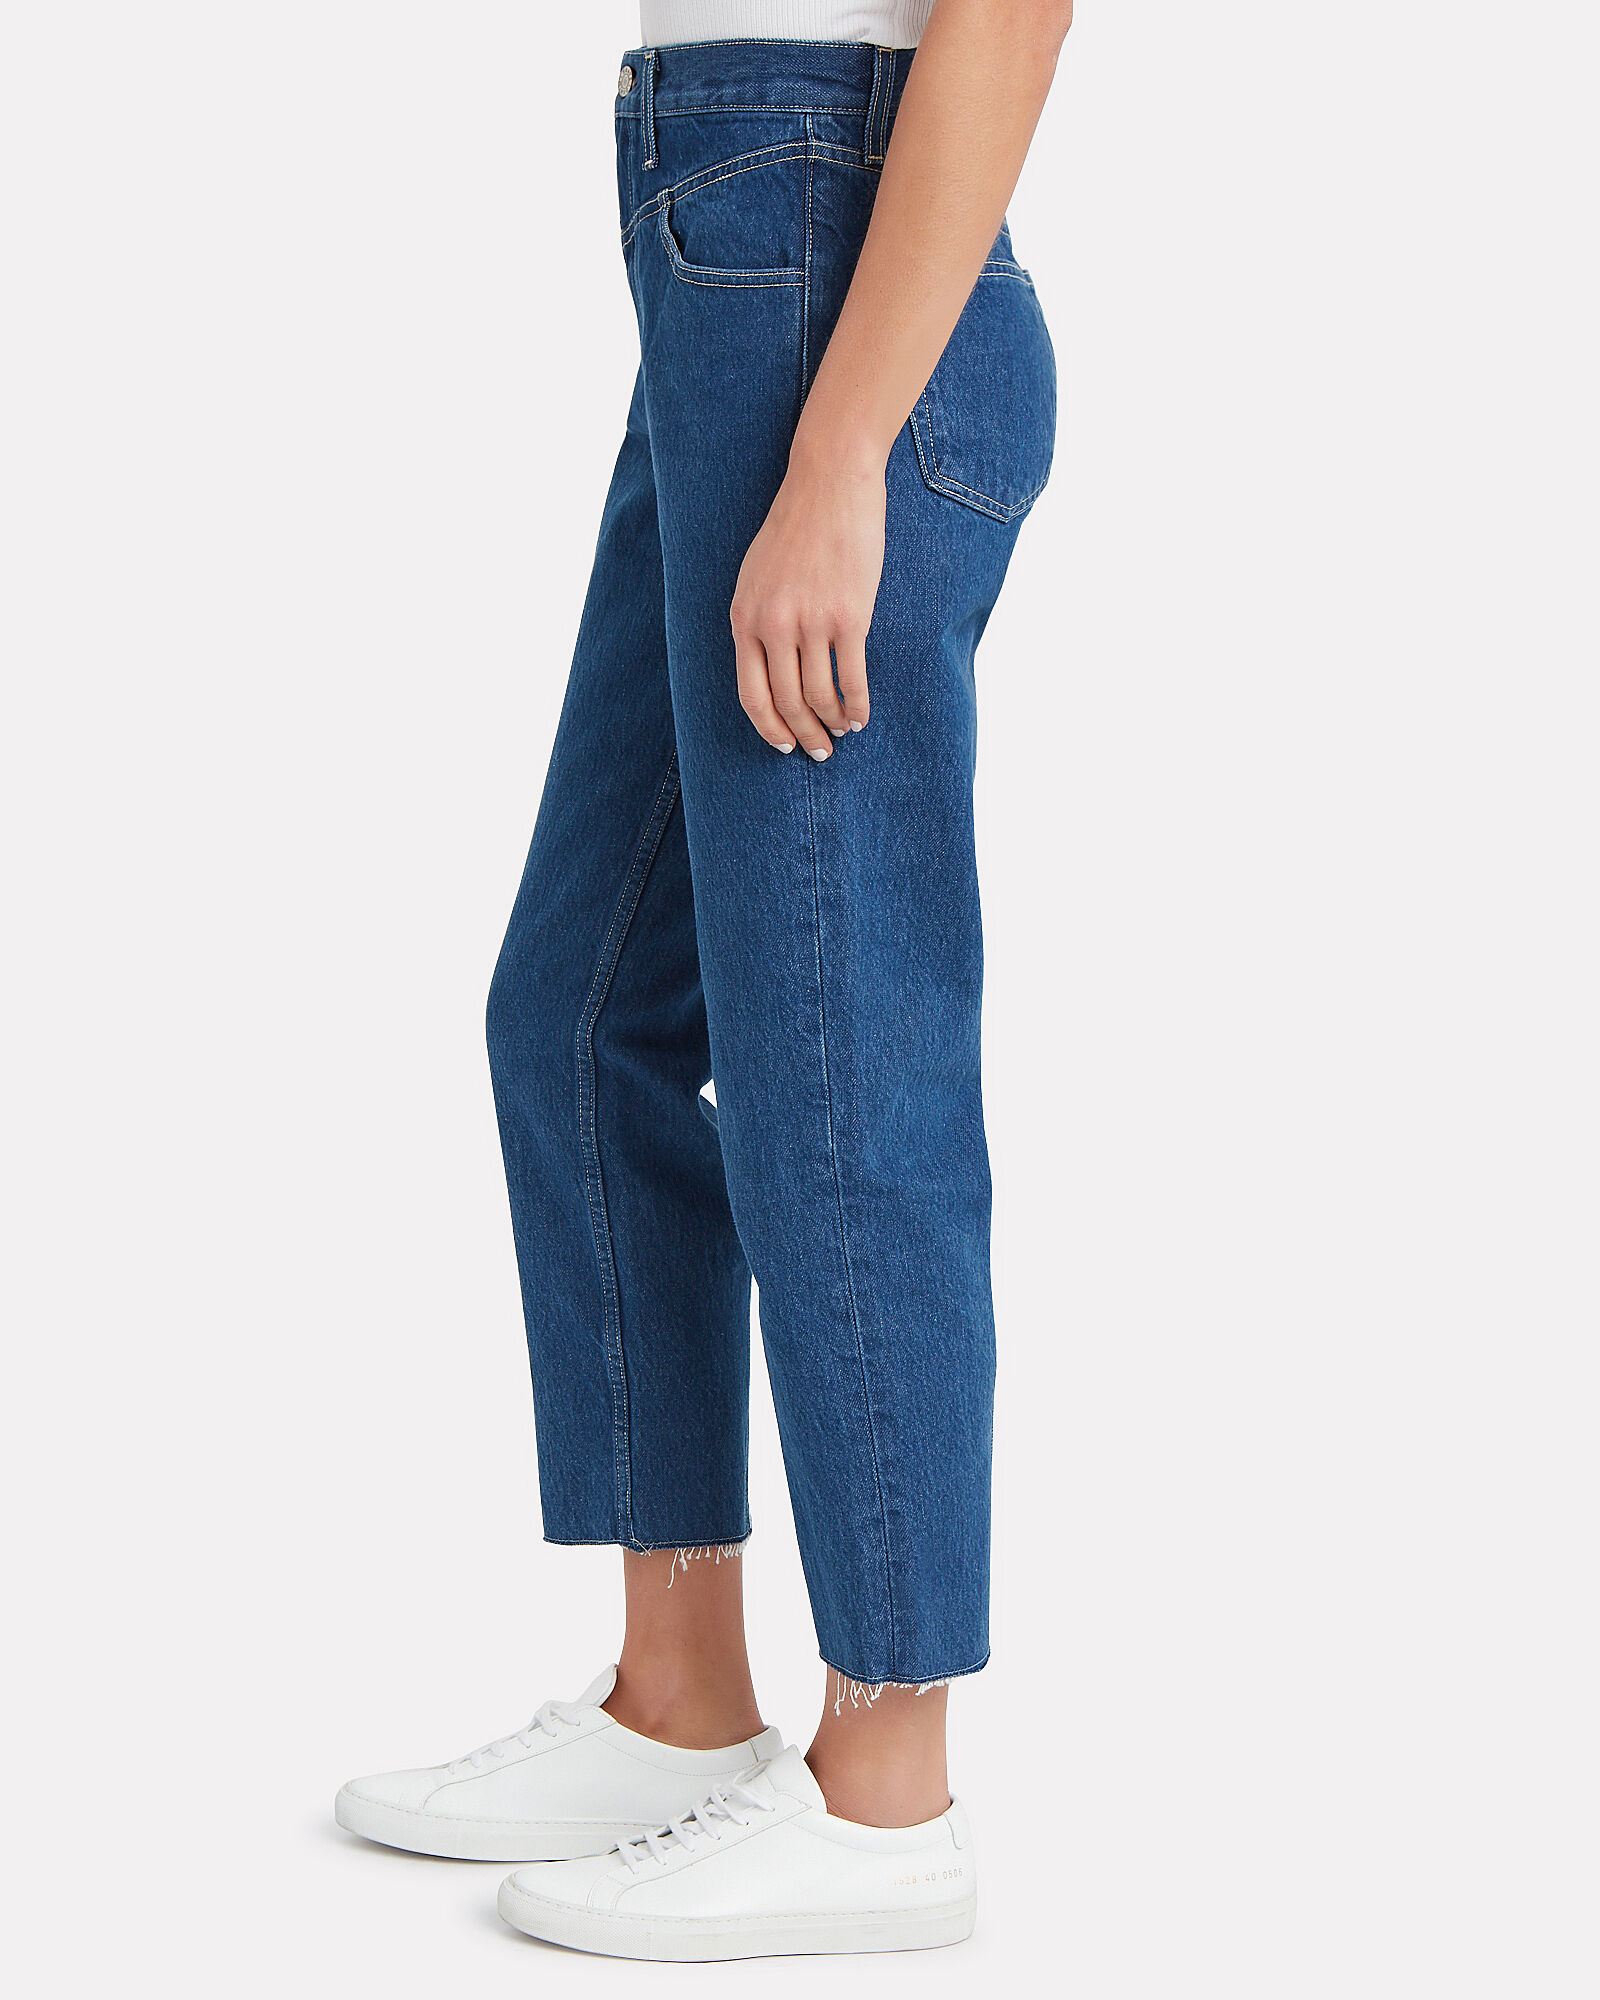 Heidi Straight Cropped Yoke Jeans, MEDIUM WASH DENIM, hi-res